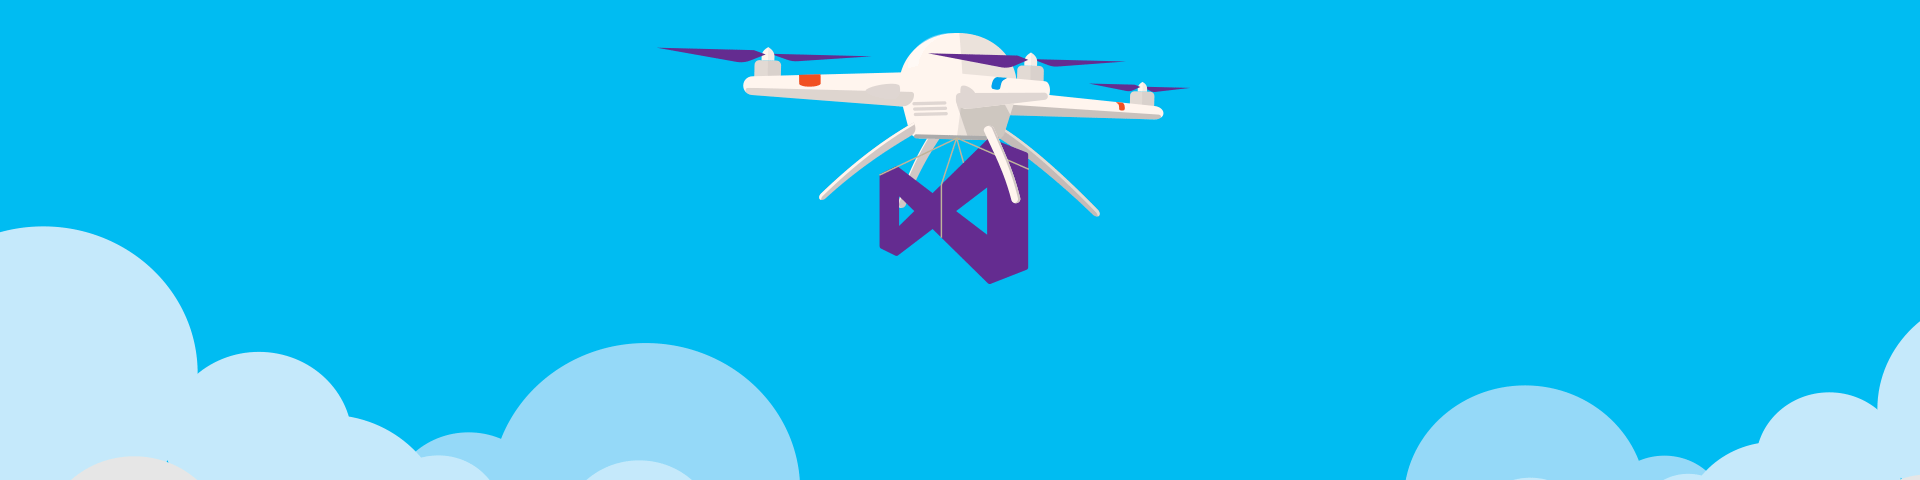 An illustration of a flying drone carrying the Visual Studio logo